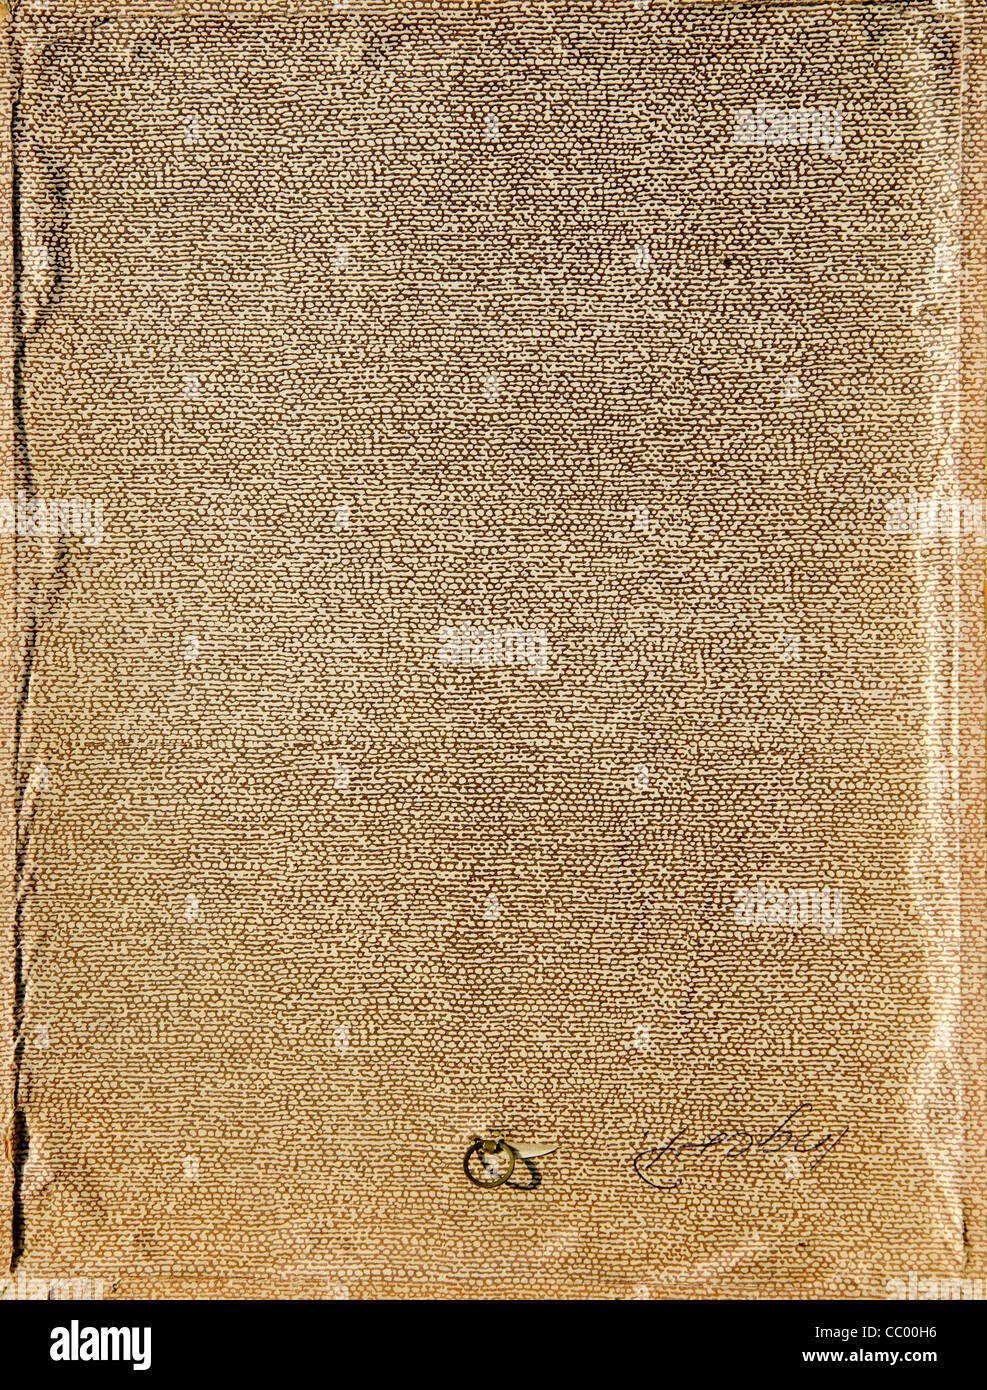 Old Book Cover Background : Wallpaper of carton box old book cover background diary